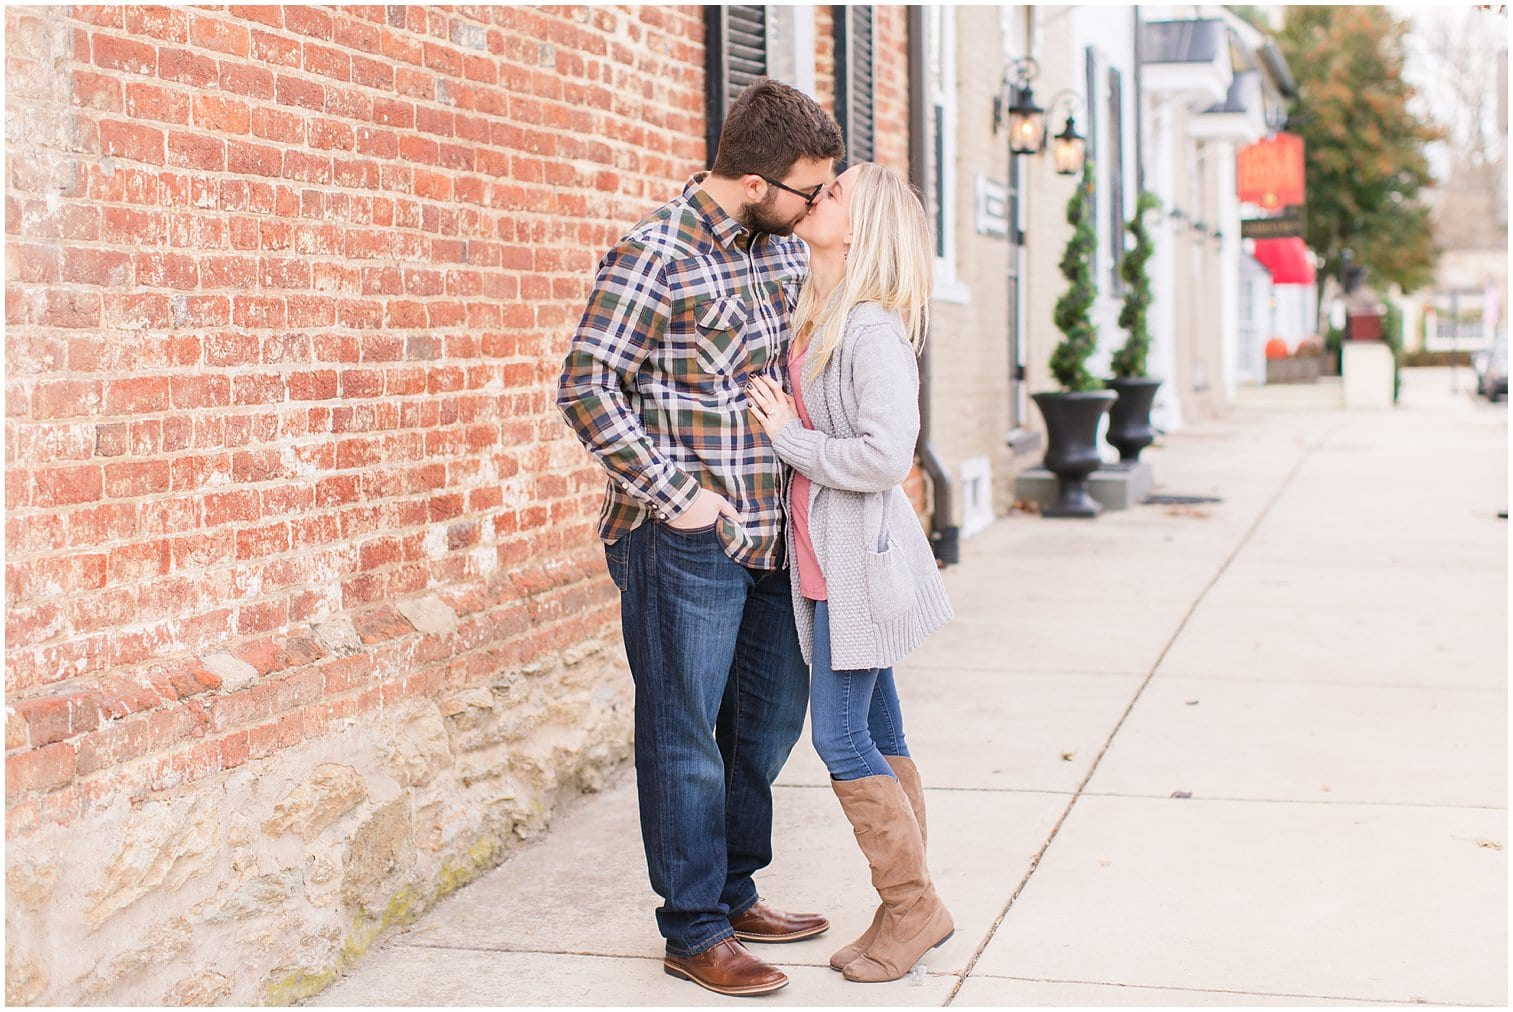 Downtown Middleburg Engagement Photos Virginia Wedding Photographer Megan Kelsey Photography Blair & Mike-6.jpg